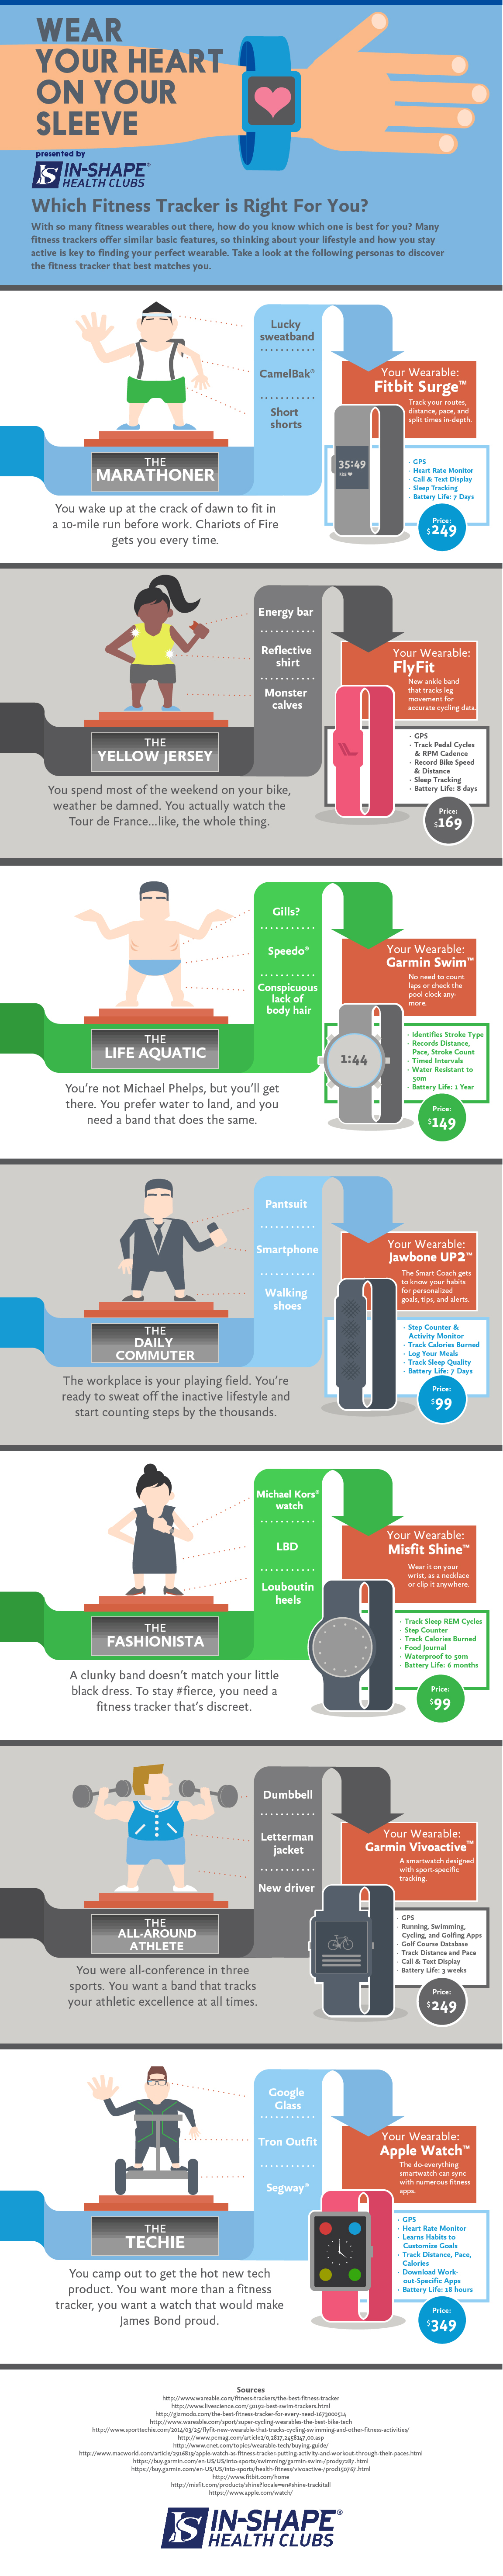 Fitness Wearables Infographic